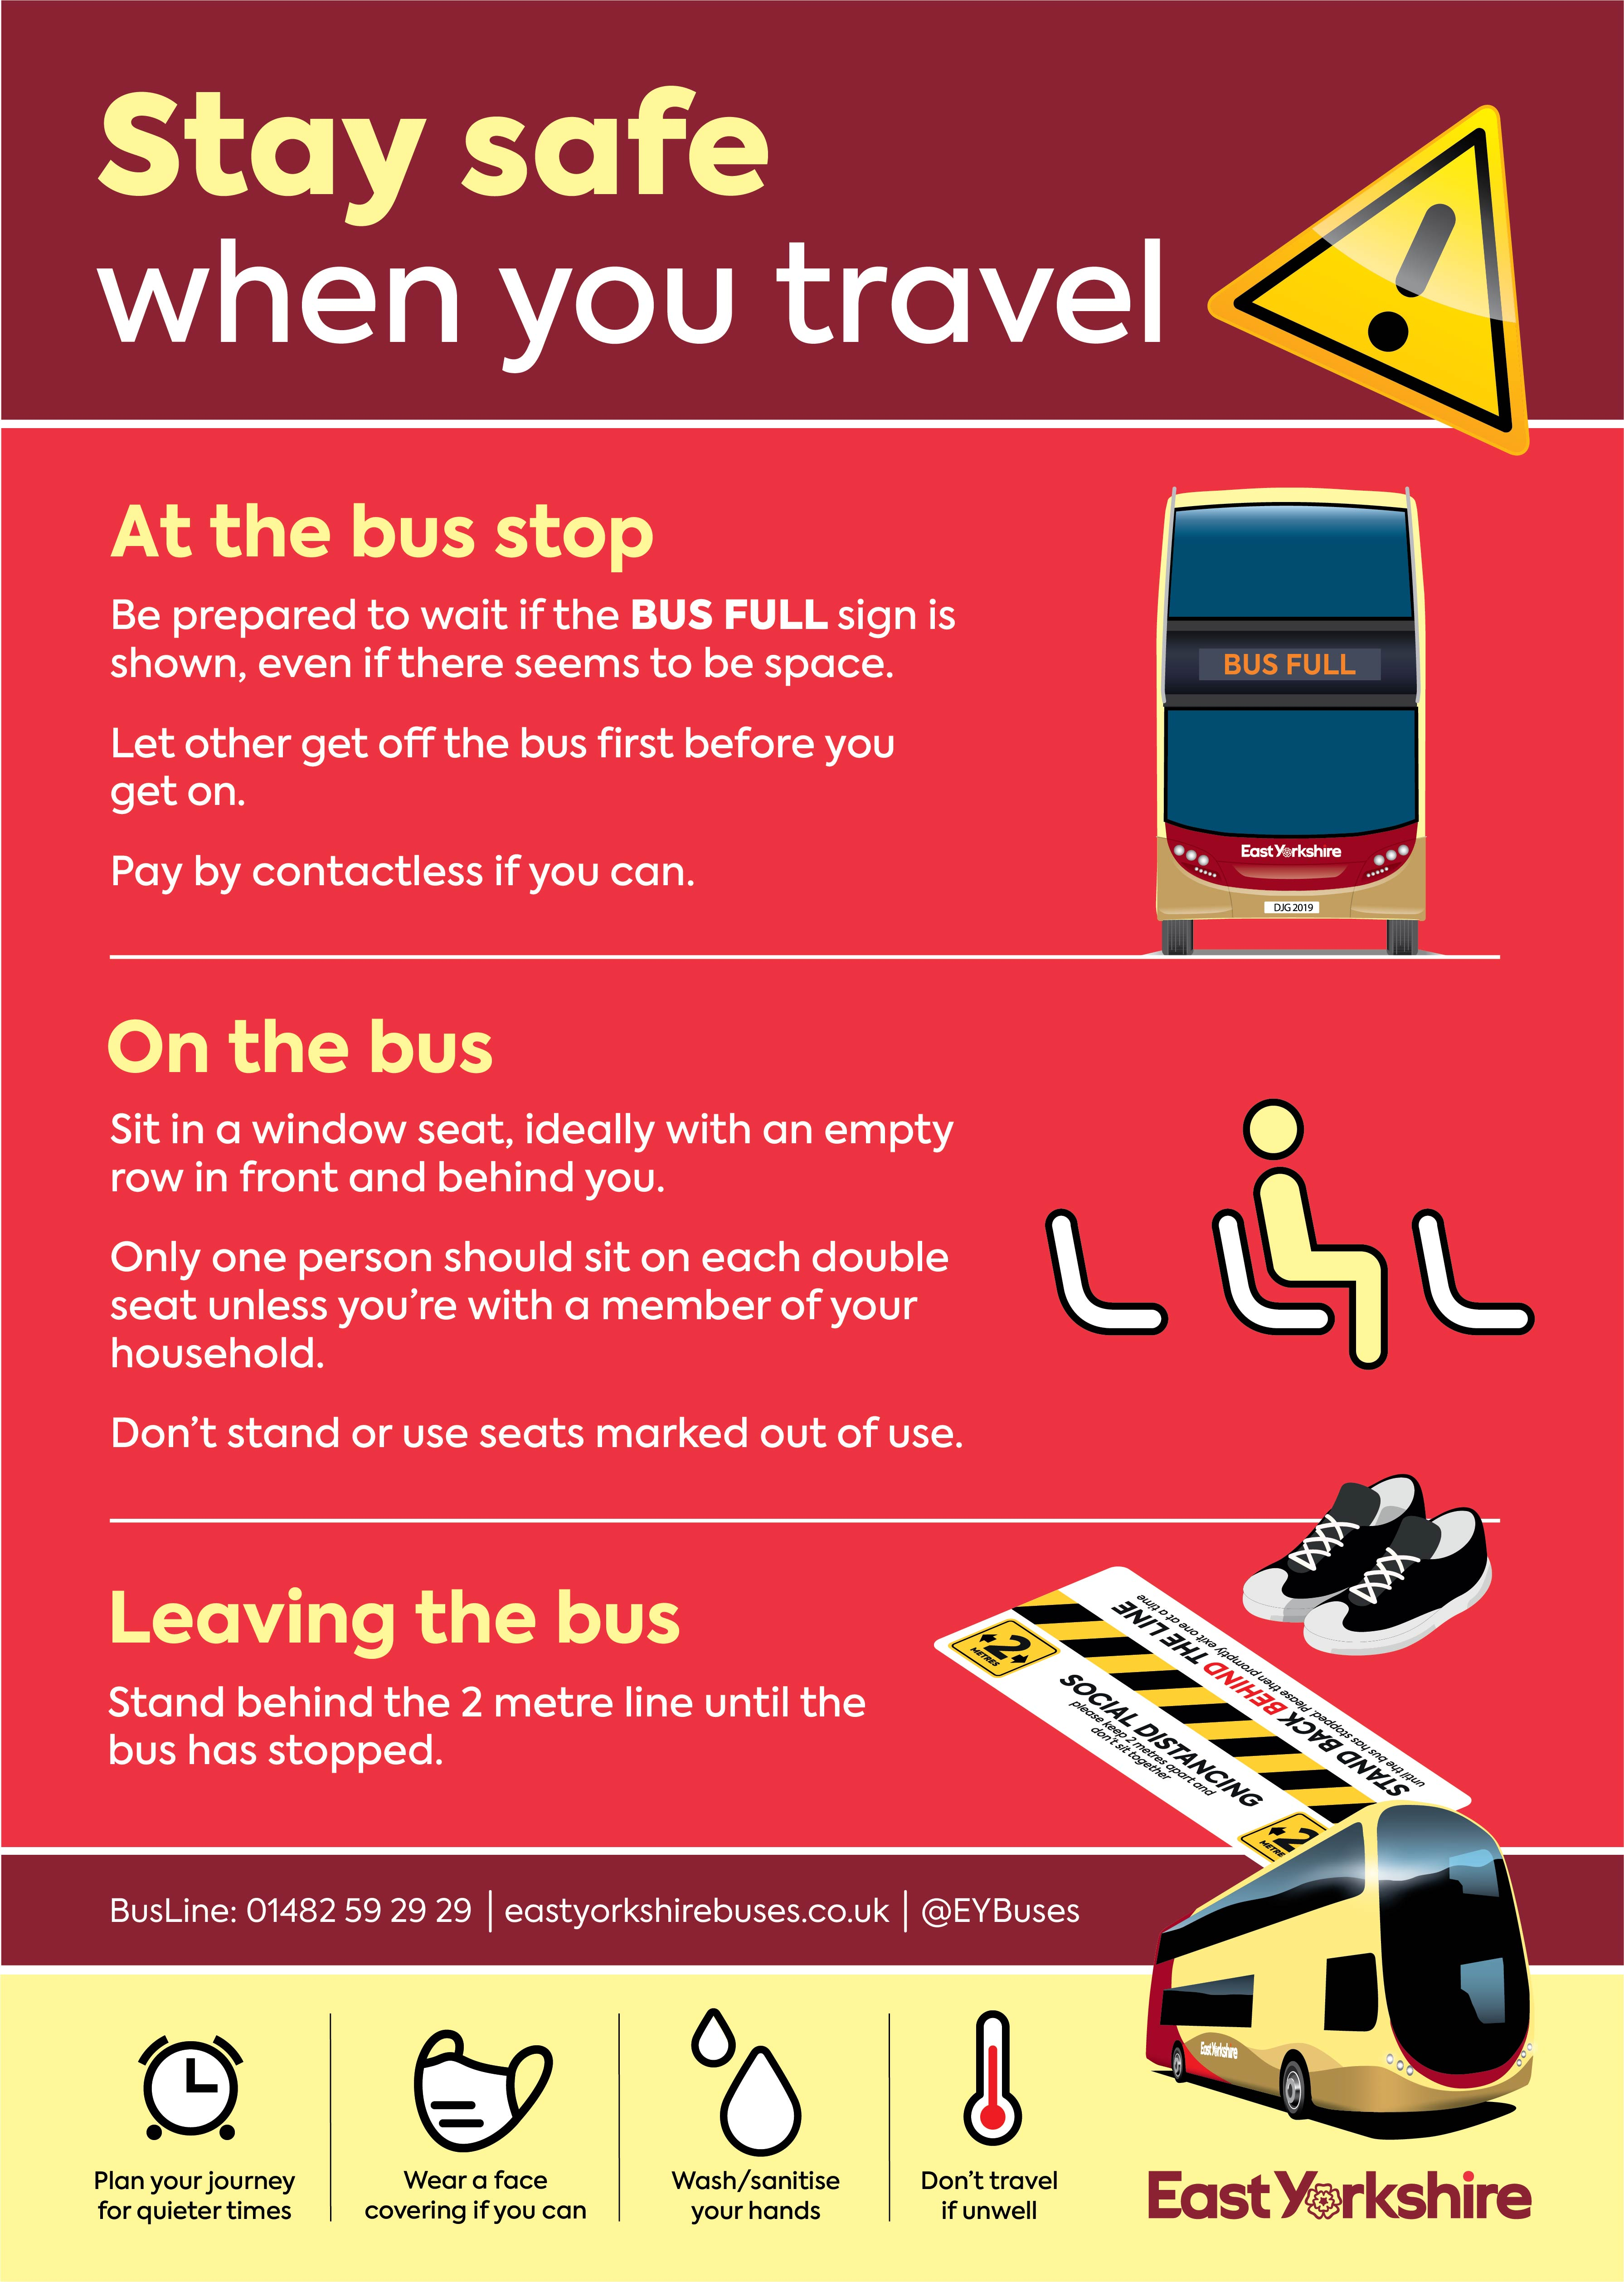 Staying safe when travelling